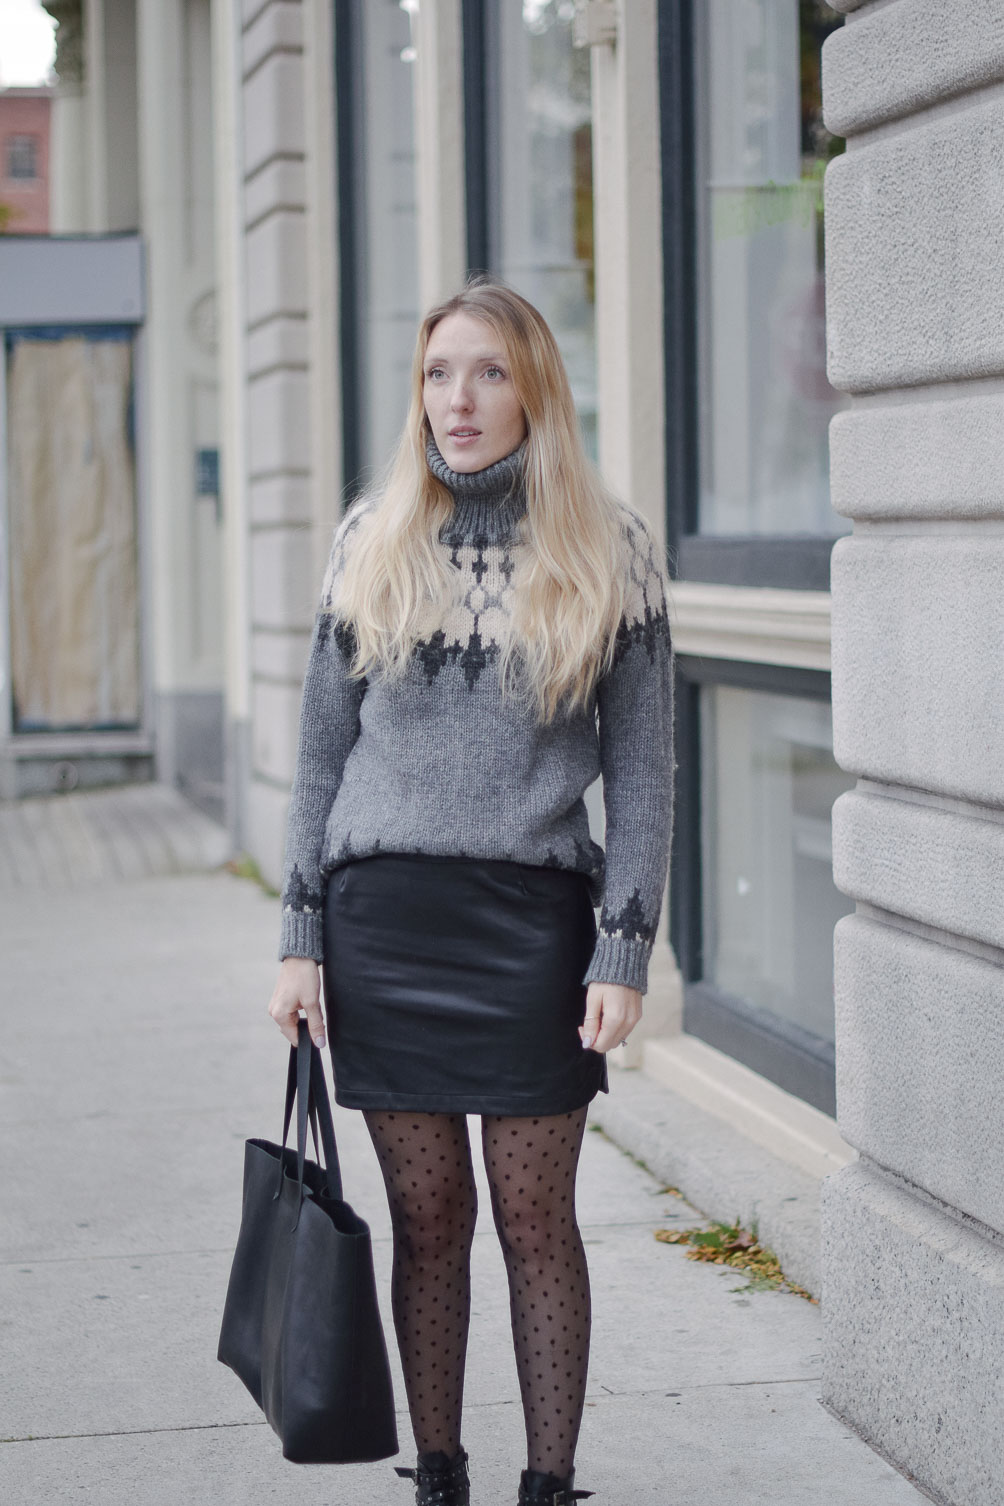 fashion blogger Leslie Musser pulling off statement tights in a cozy winter outfit